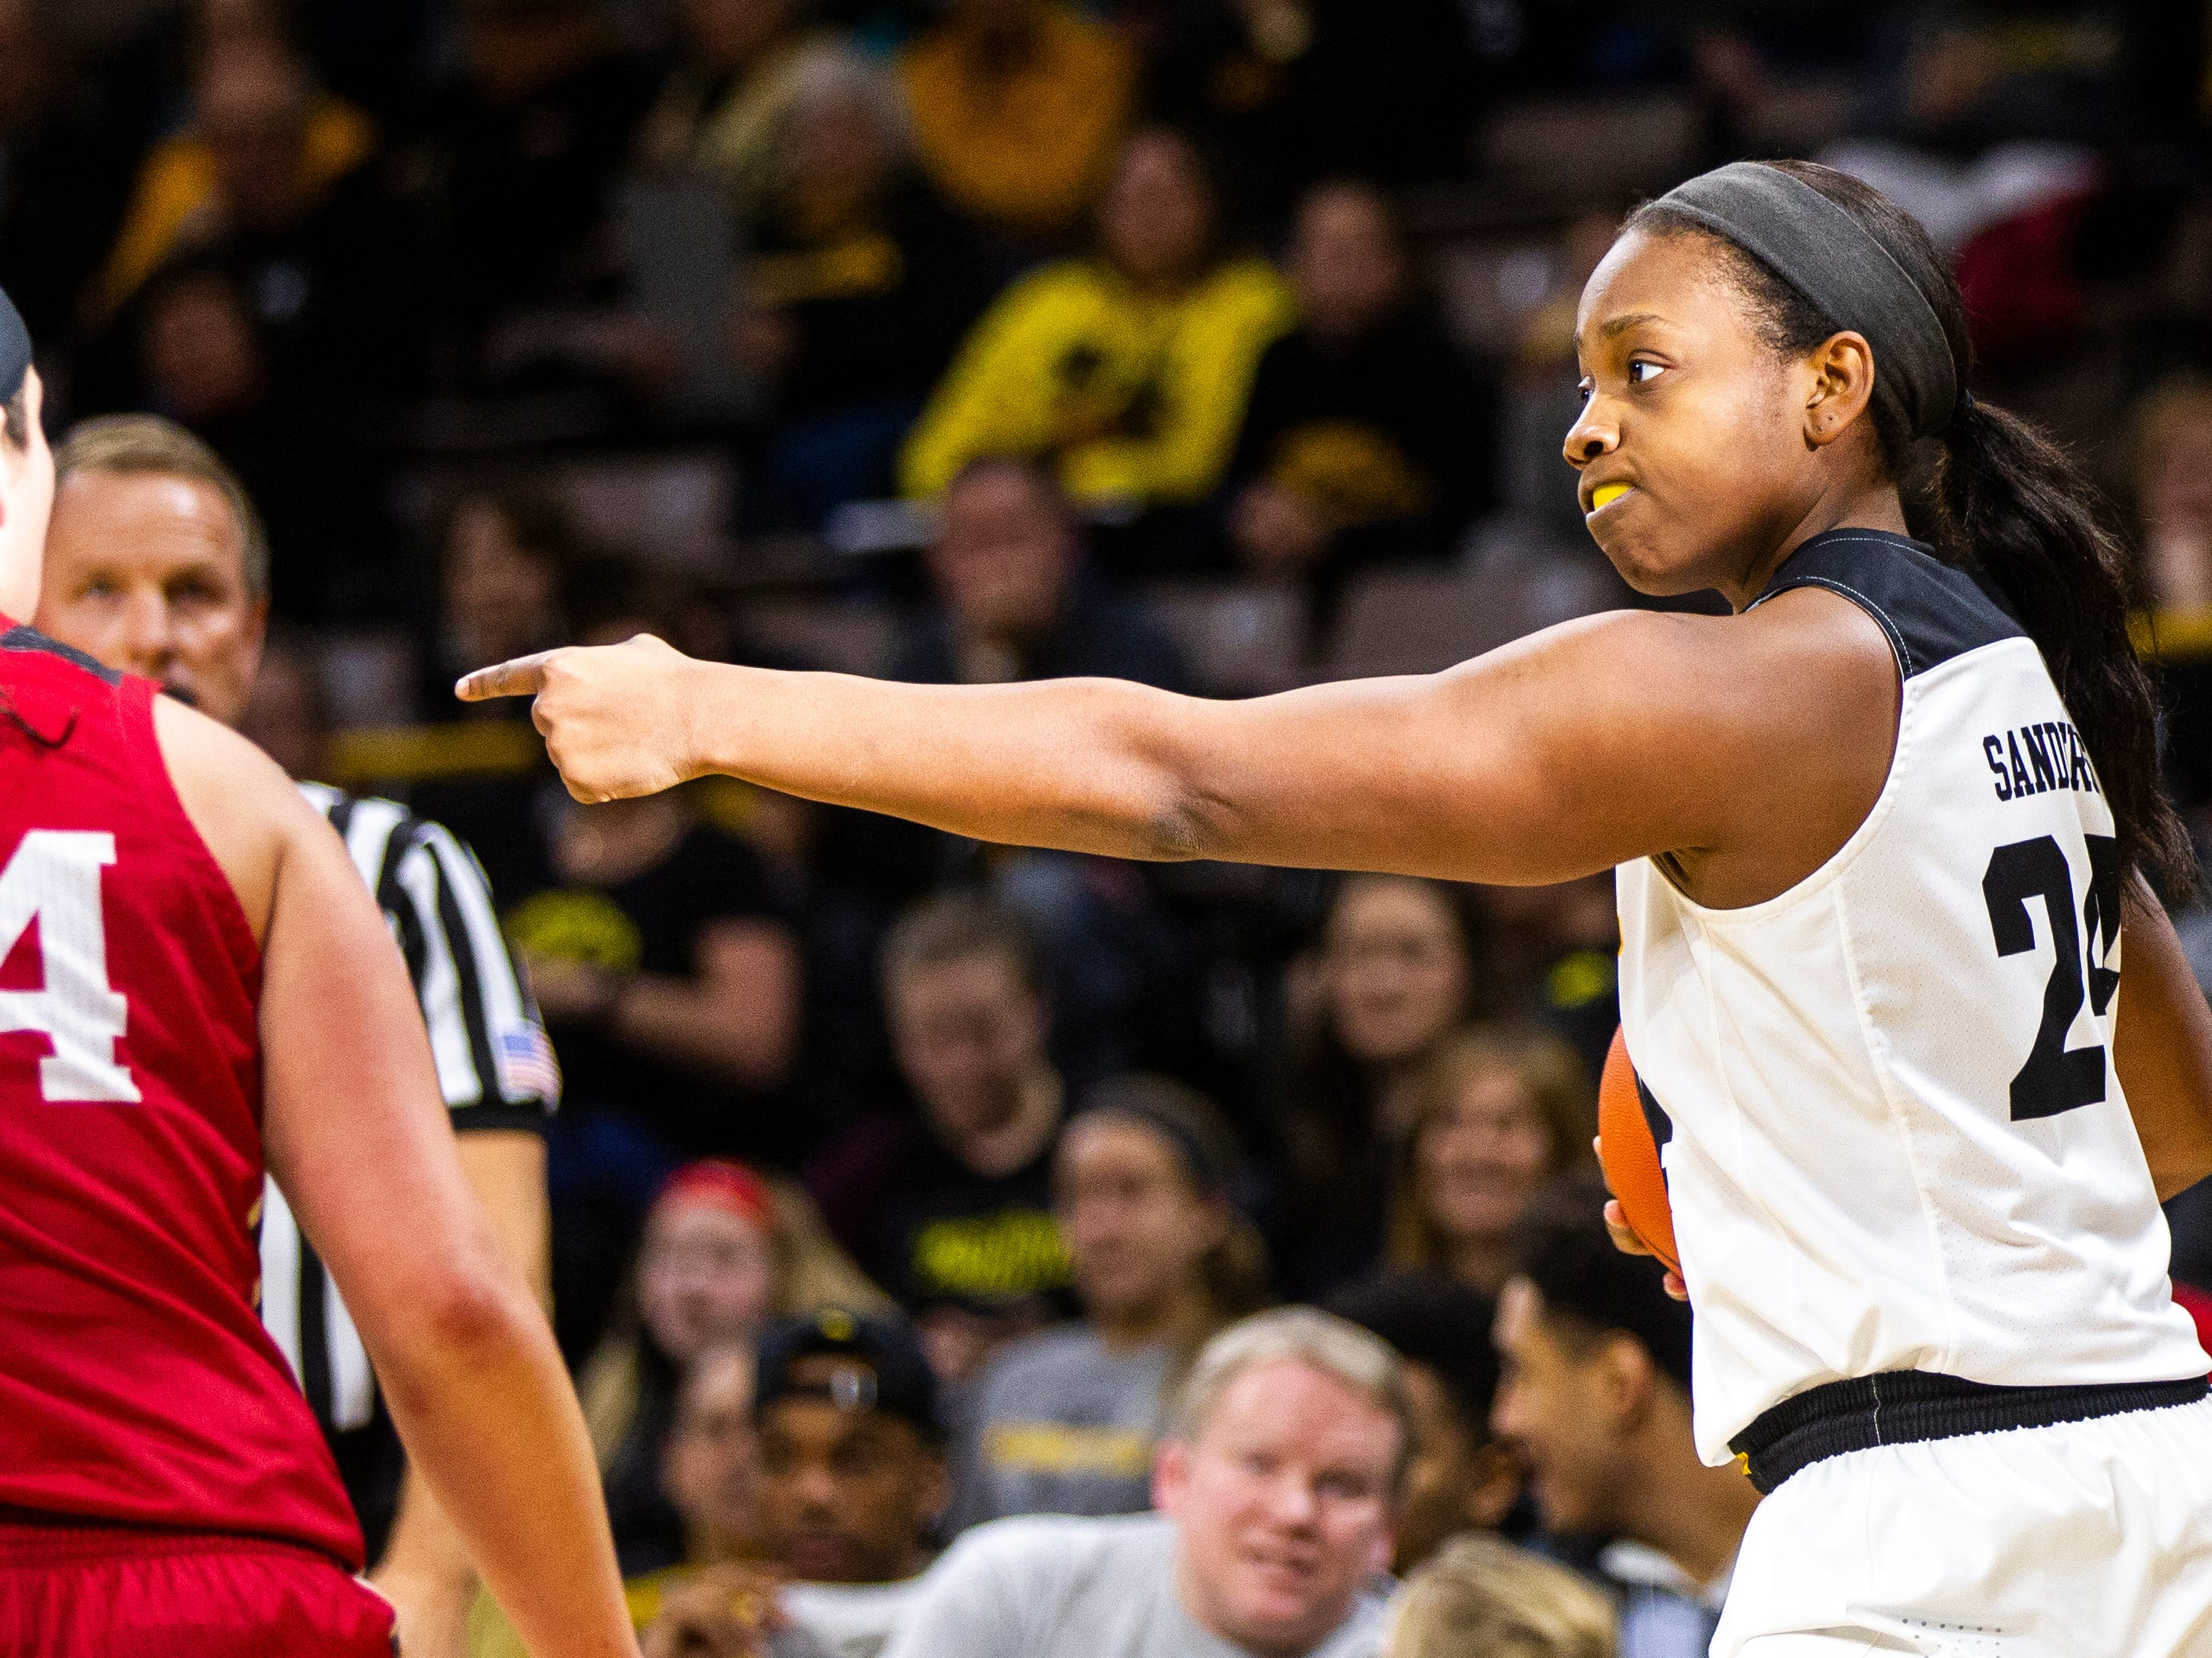 Iowa guard Zion Sanders (24) calls out to teammates during a NCAA women's basketball game on Saturday, Dec. 8, 2018, at Carver-Hawkeye Arena in Iowa City.